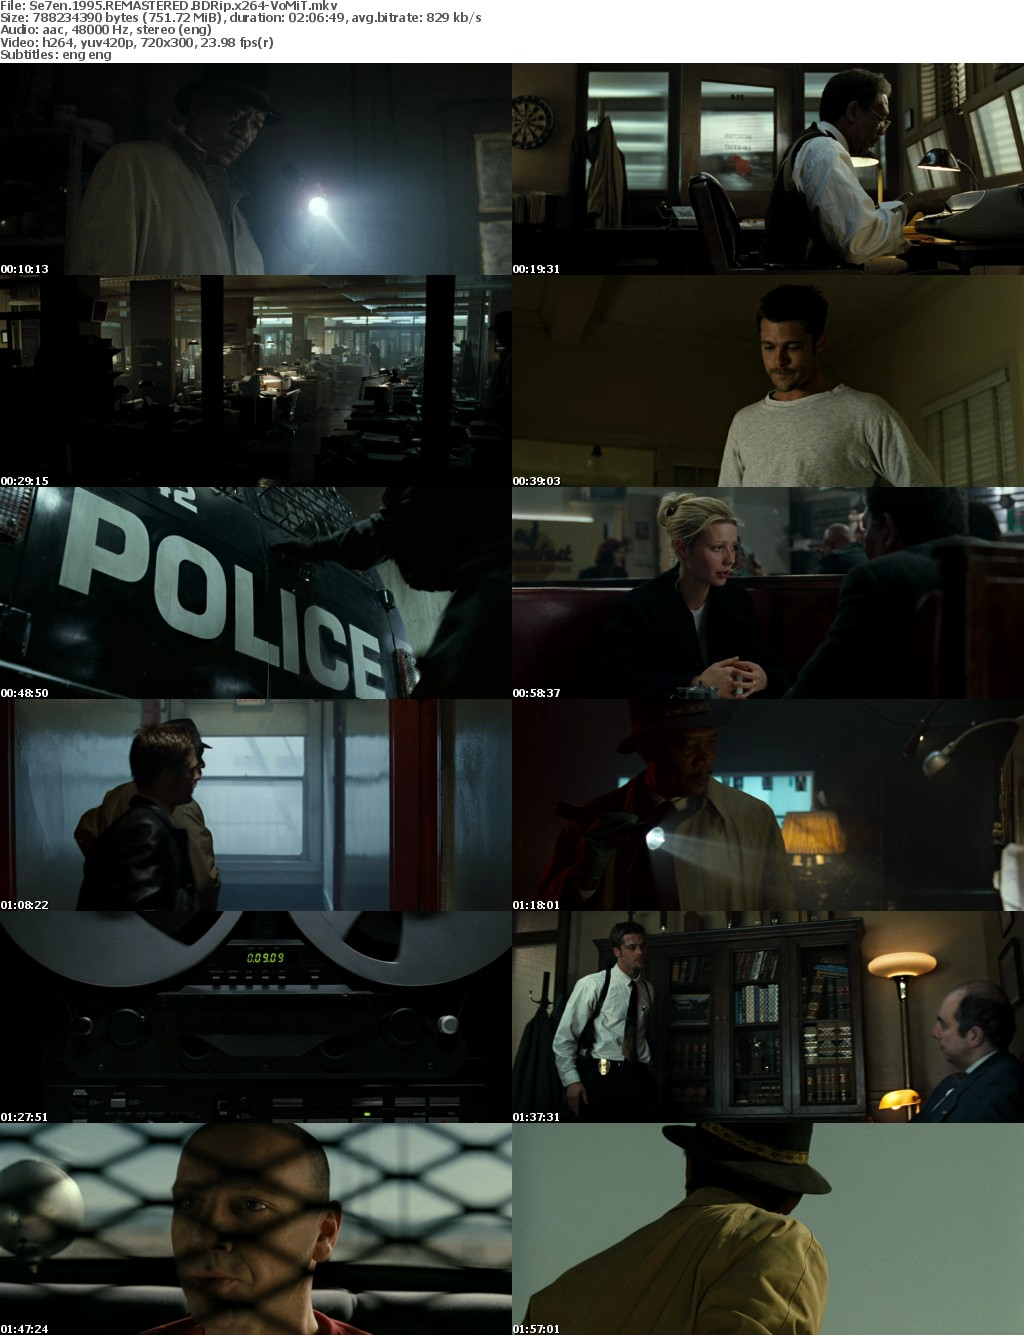 Se7en 1995 REMASTERED BDRip x264-VoMiT